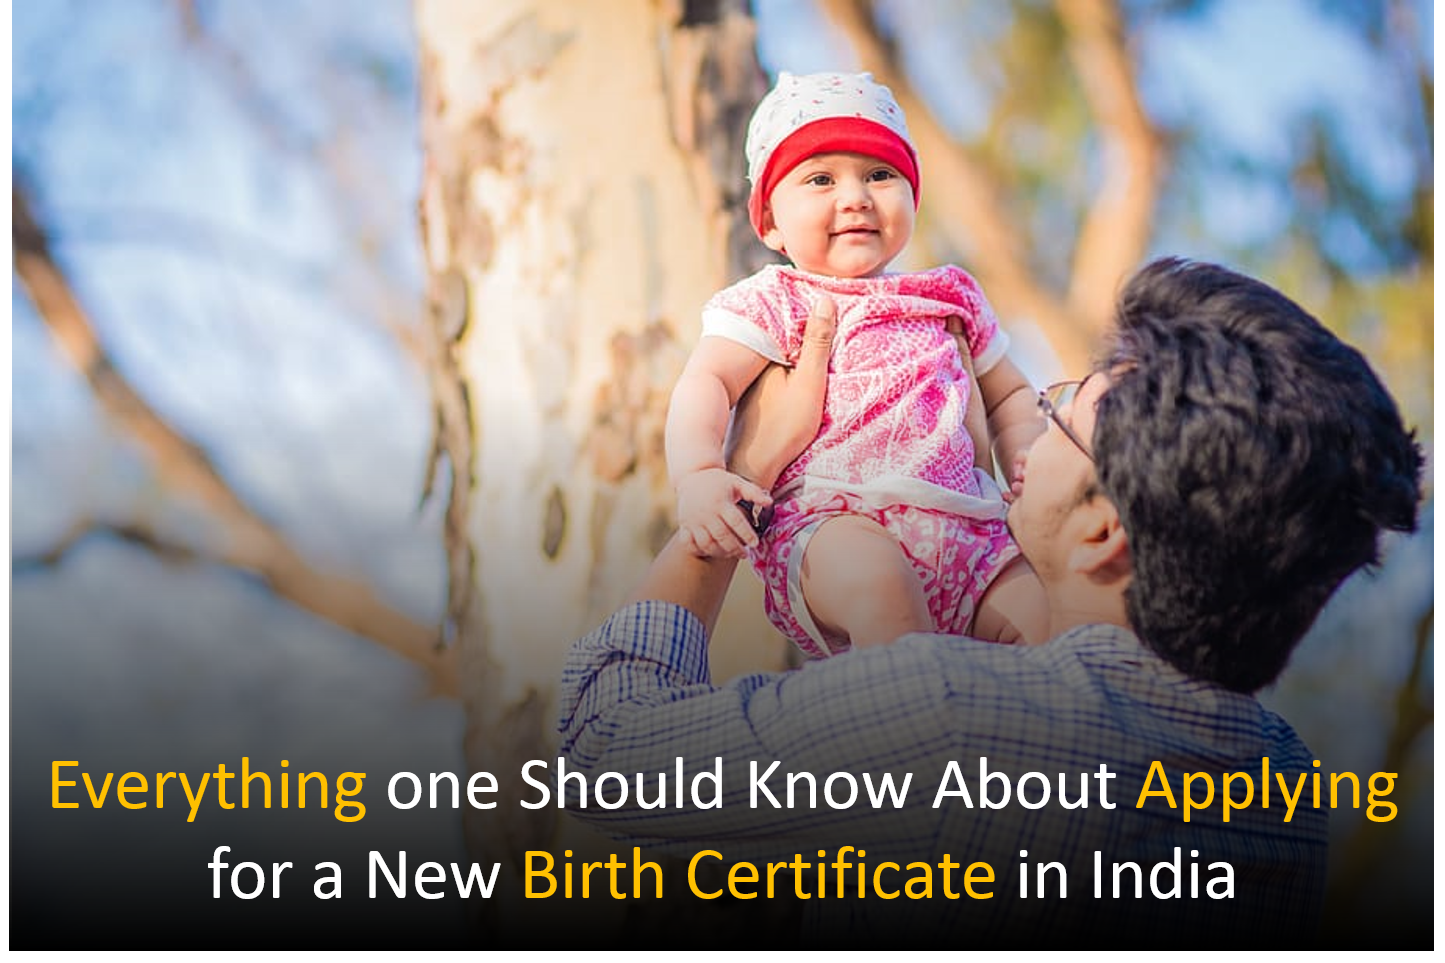 Everything one Should Know About Applying for a New Birth Certificate in India